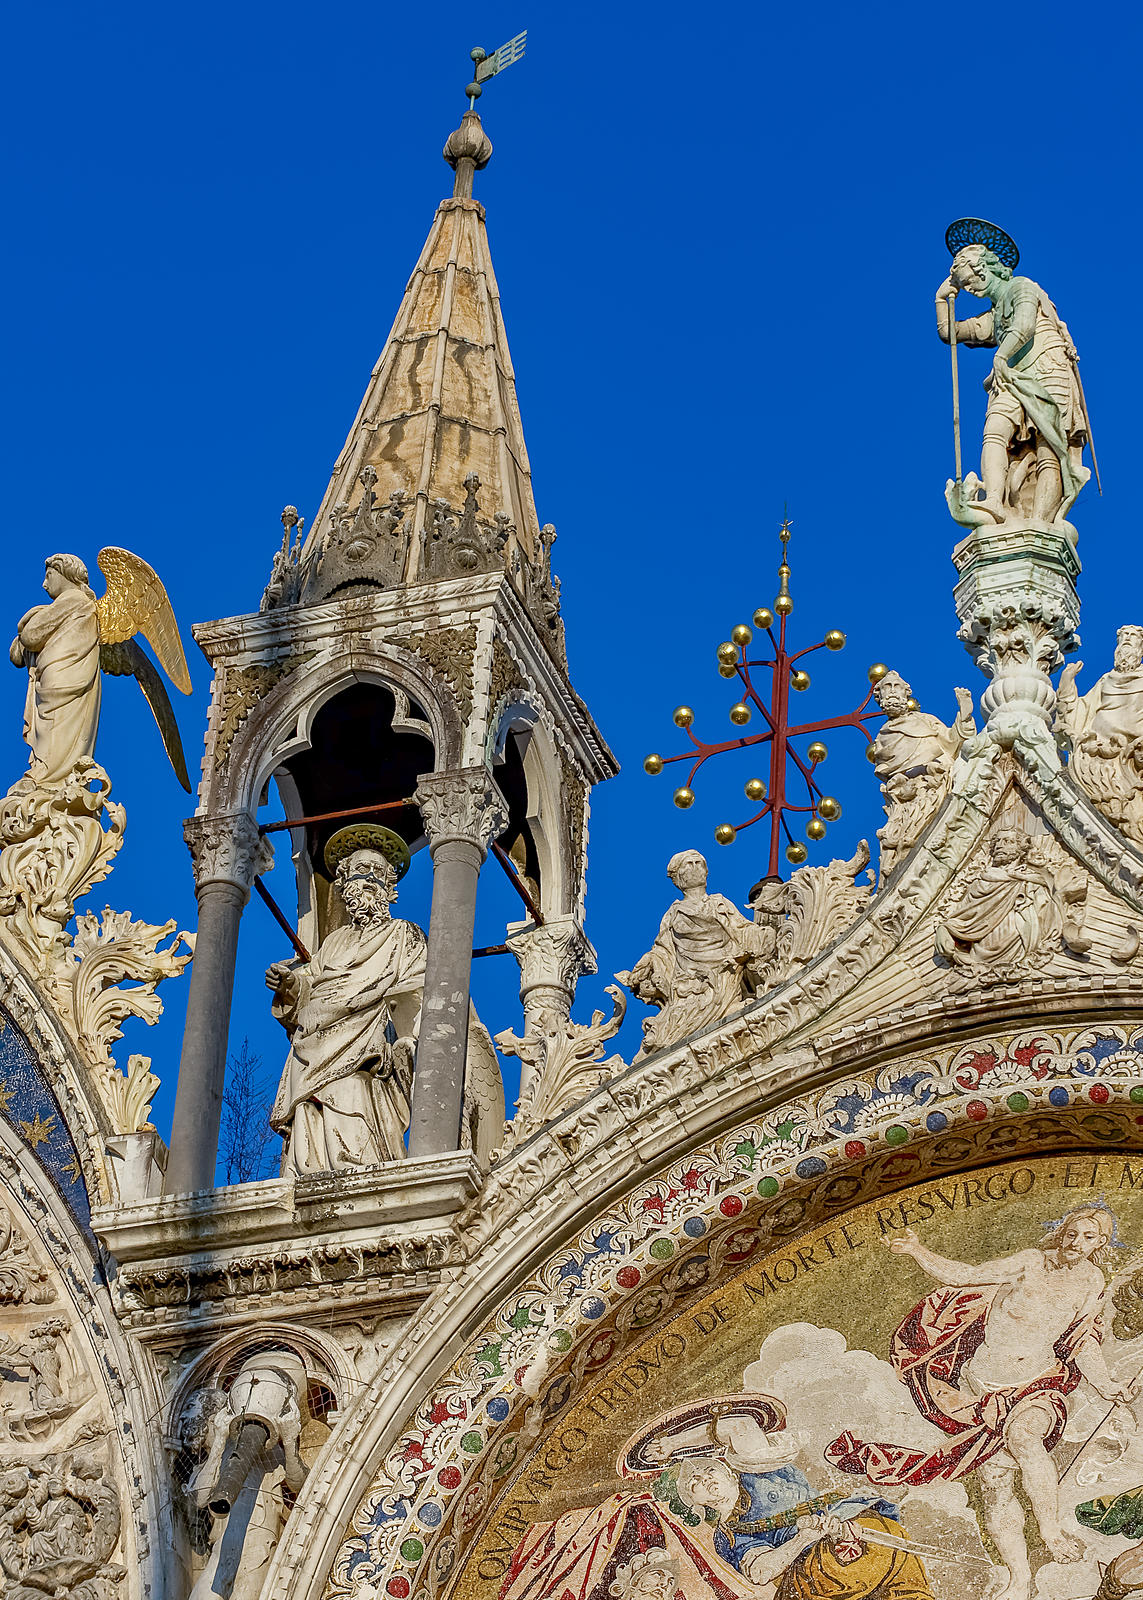 Detail of the Tetrarch Carved Statues on top of the Basilica di San Marco, Venice